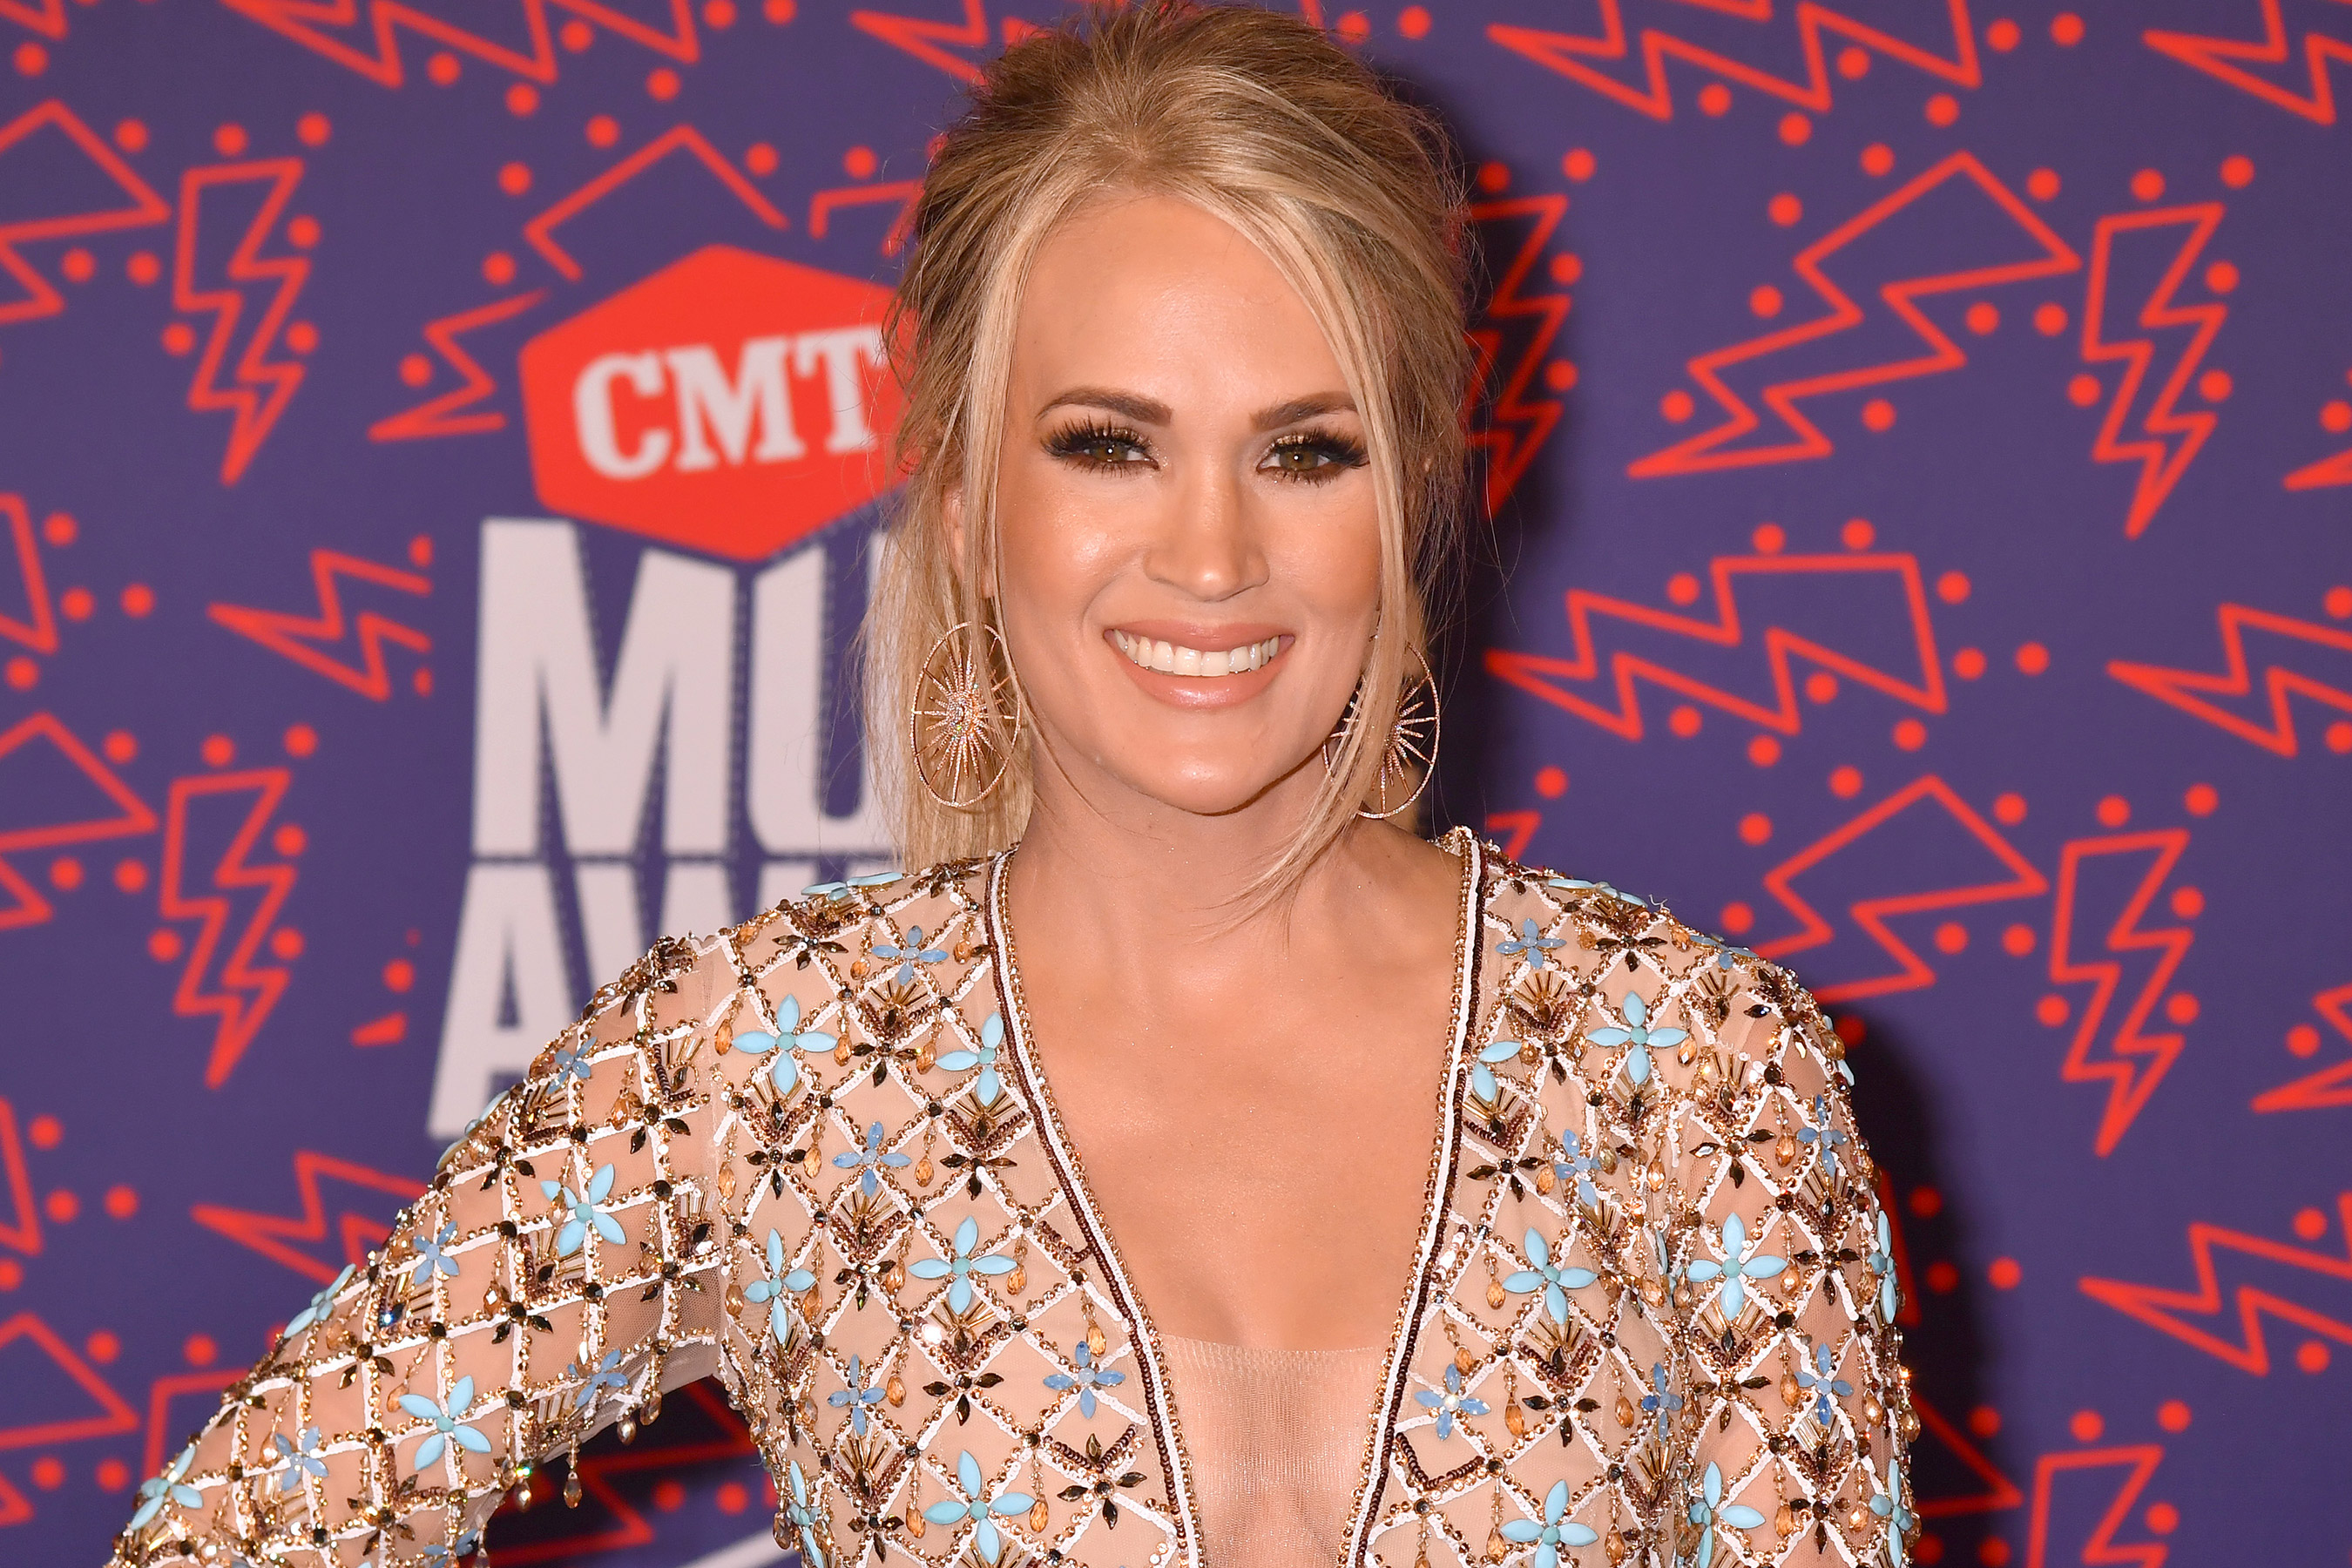 Carrie Underwood At 2019 CMT Music Awards